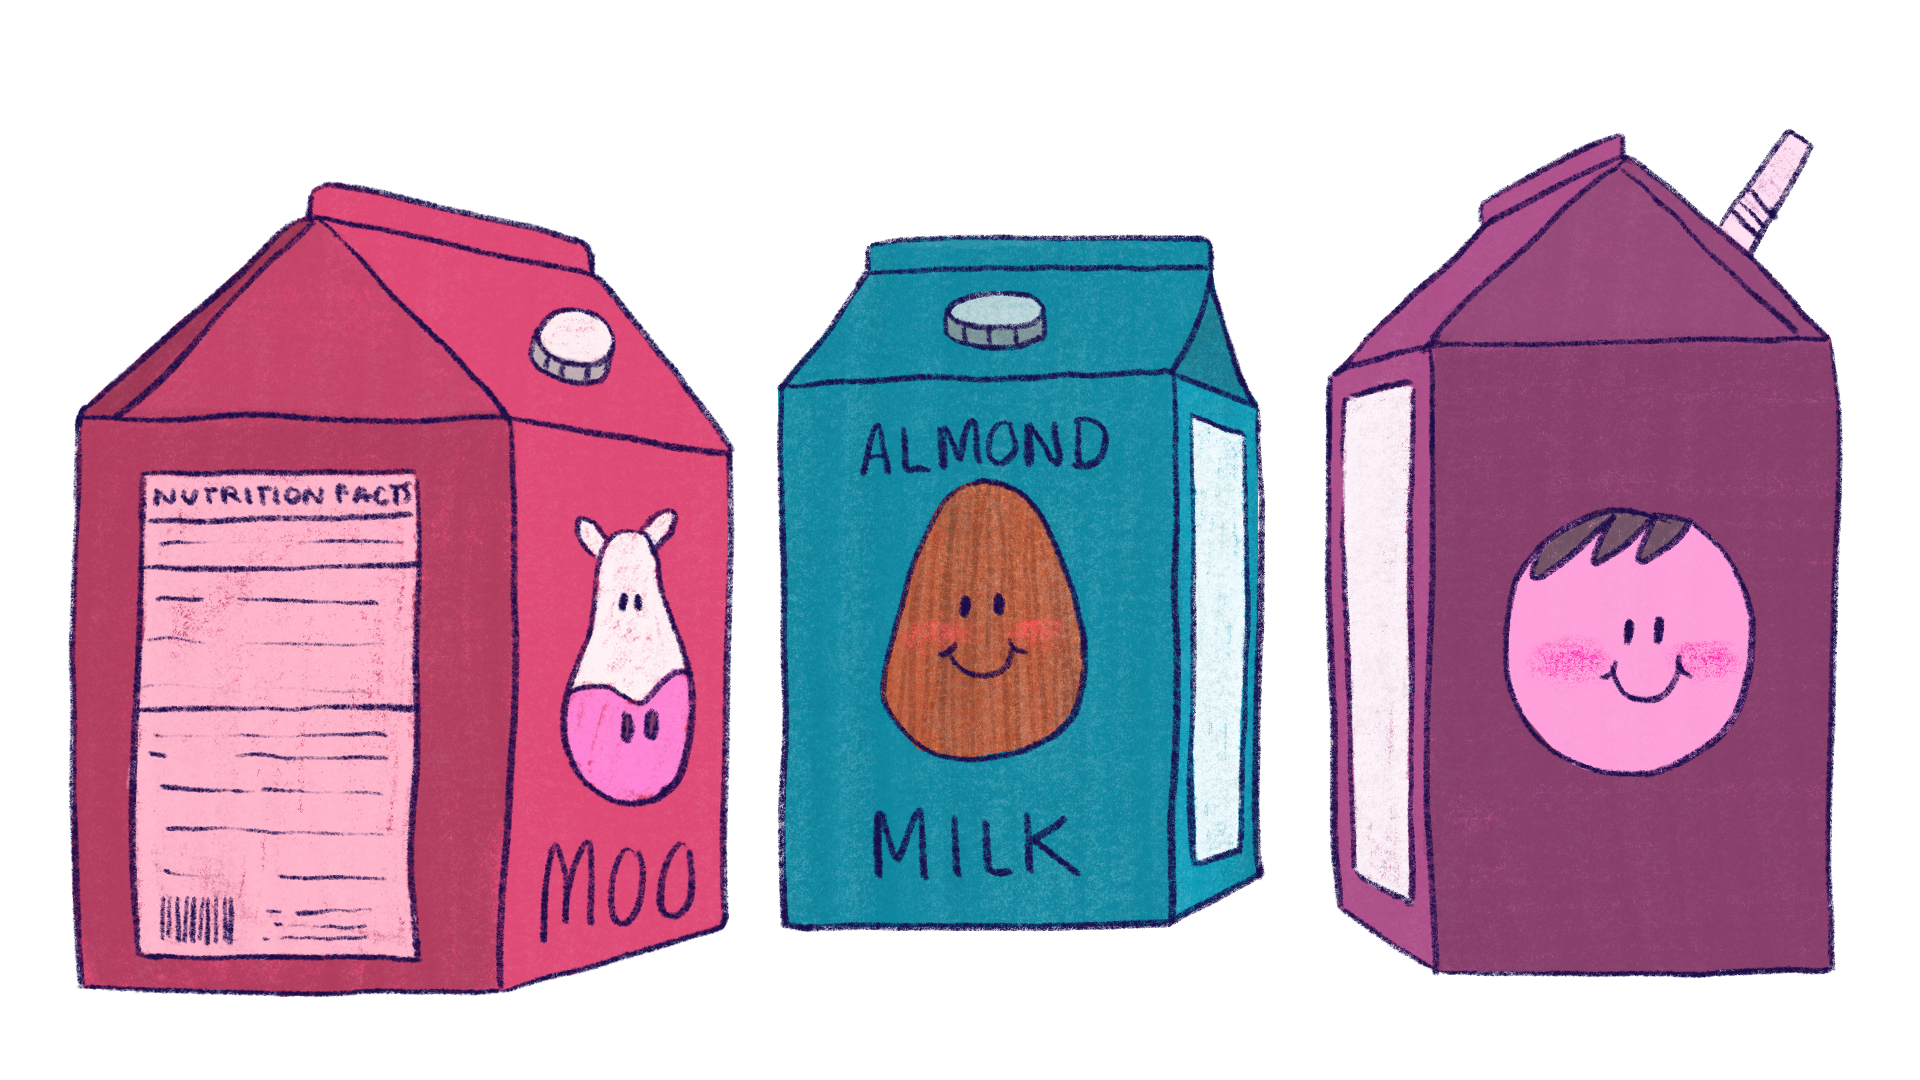 Props - Milk Cartons for Thesis backgrounds